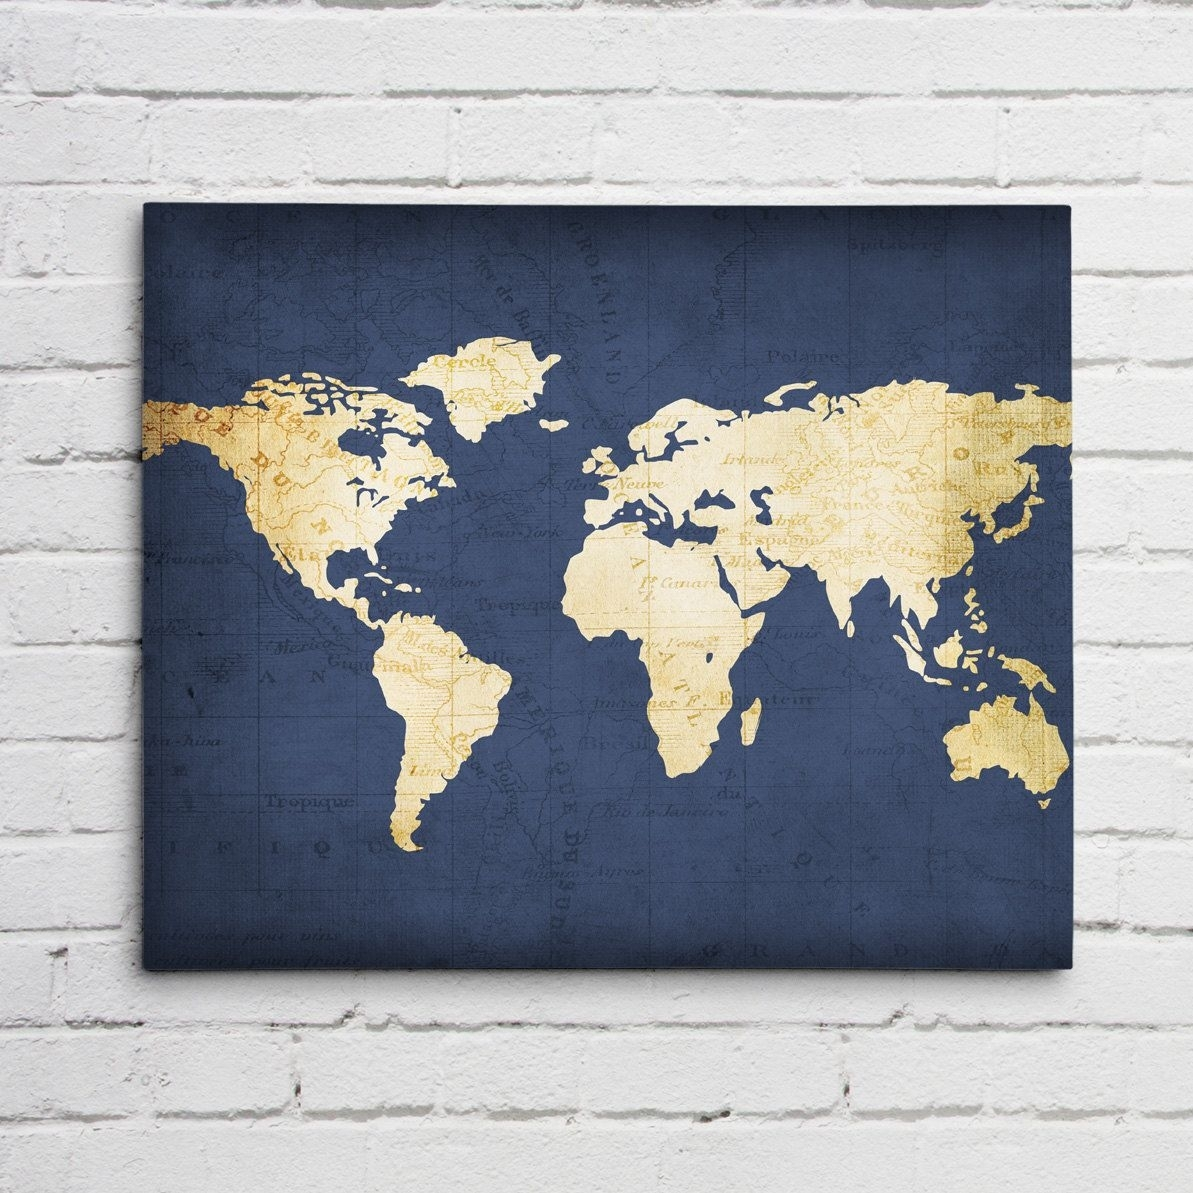 The Best Navy Blue World Map Pict Of Canvas Wall Art Styles And with regard to Navy Blue Wall Art (Image 18 of 20)